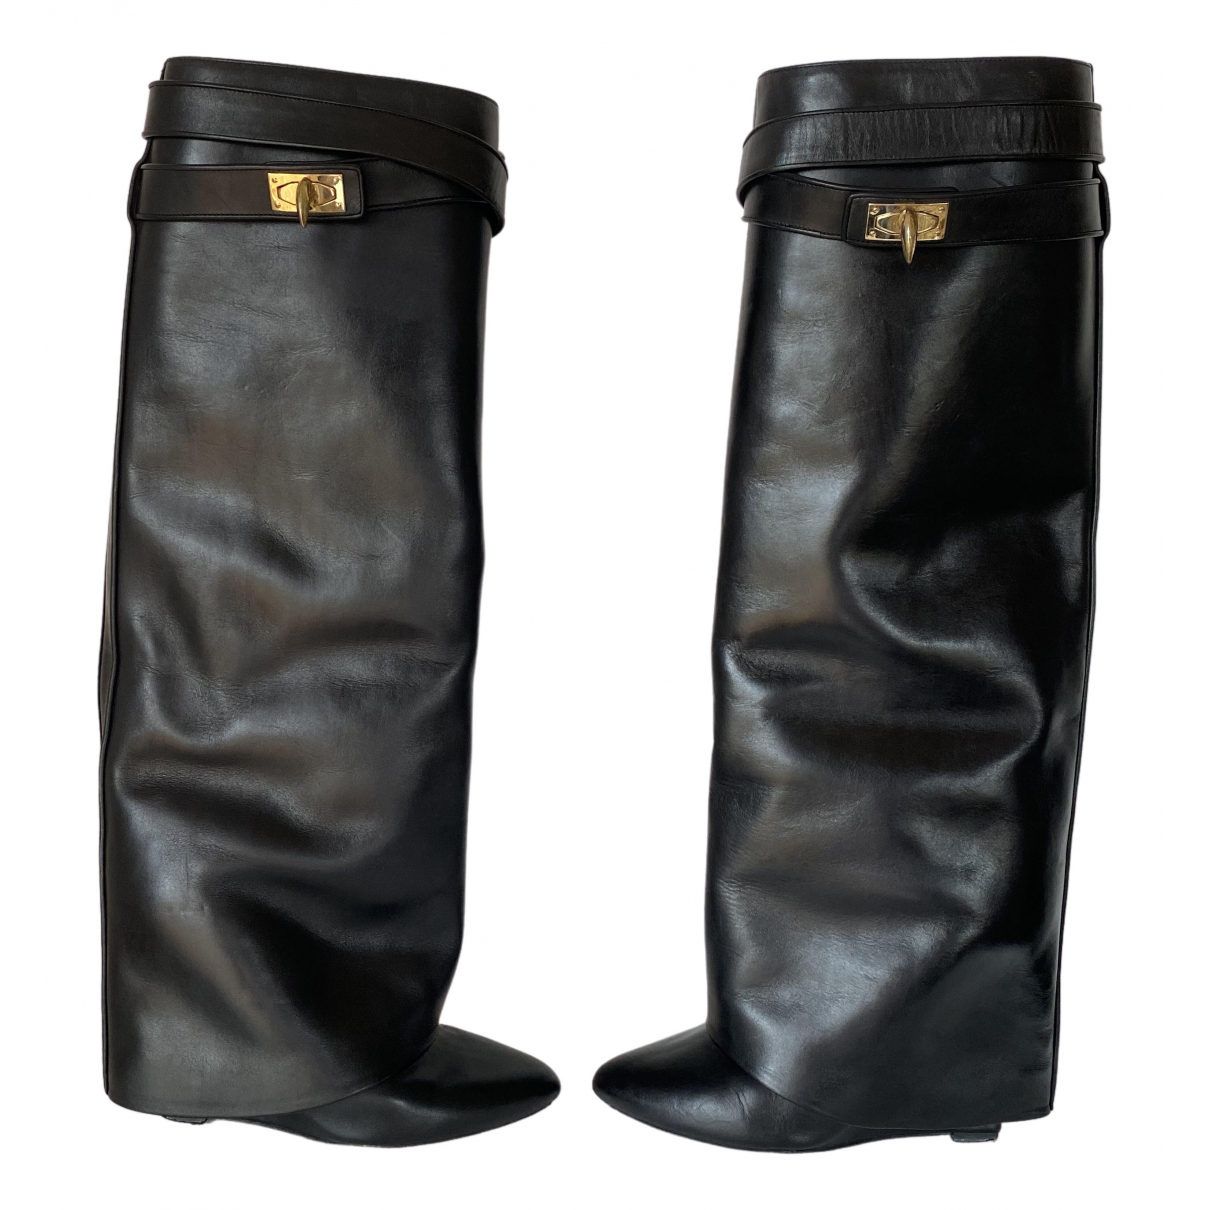 Givenchy Shark Black Leather Boots for Women 37 EU